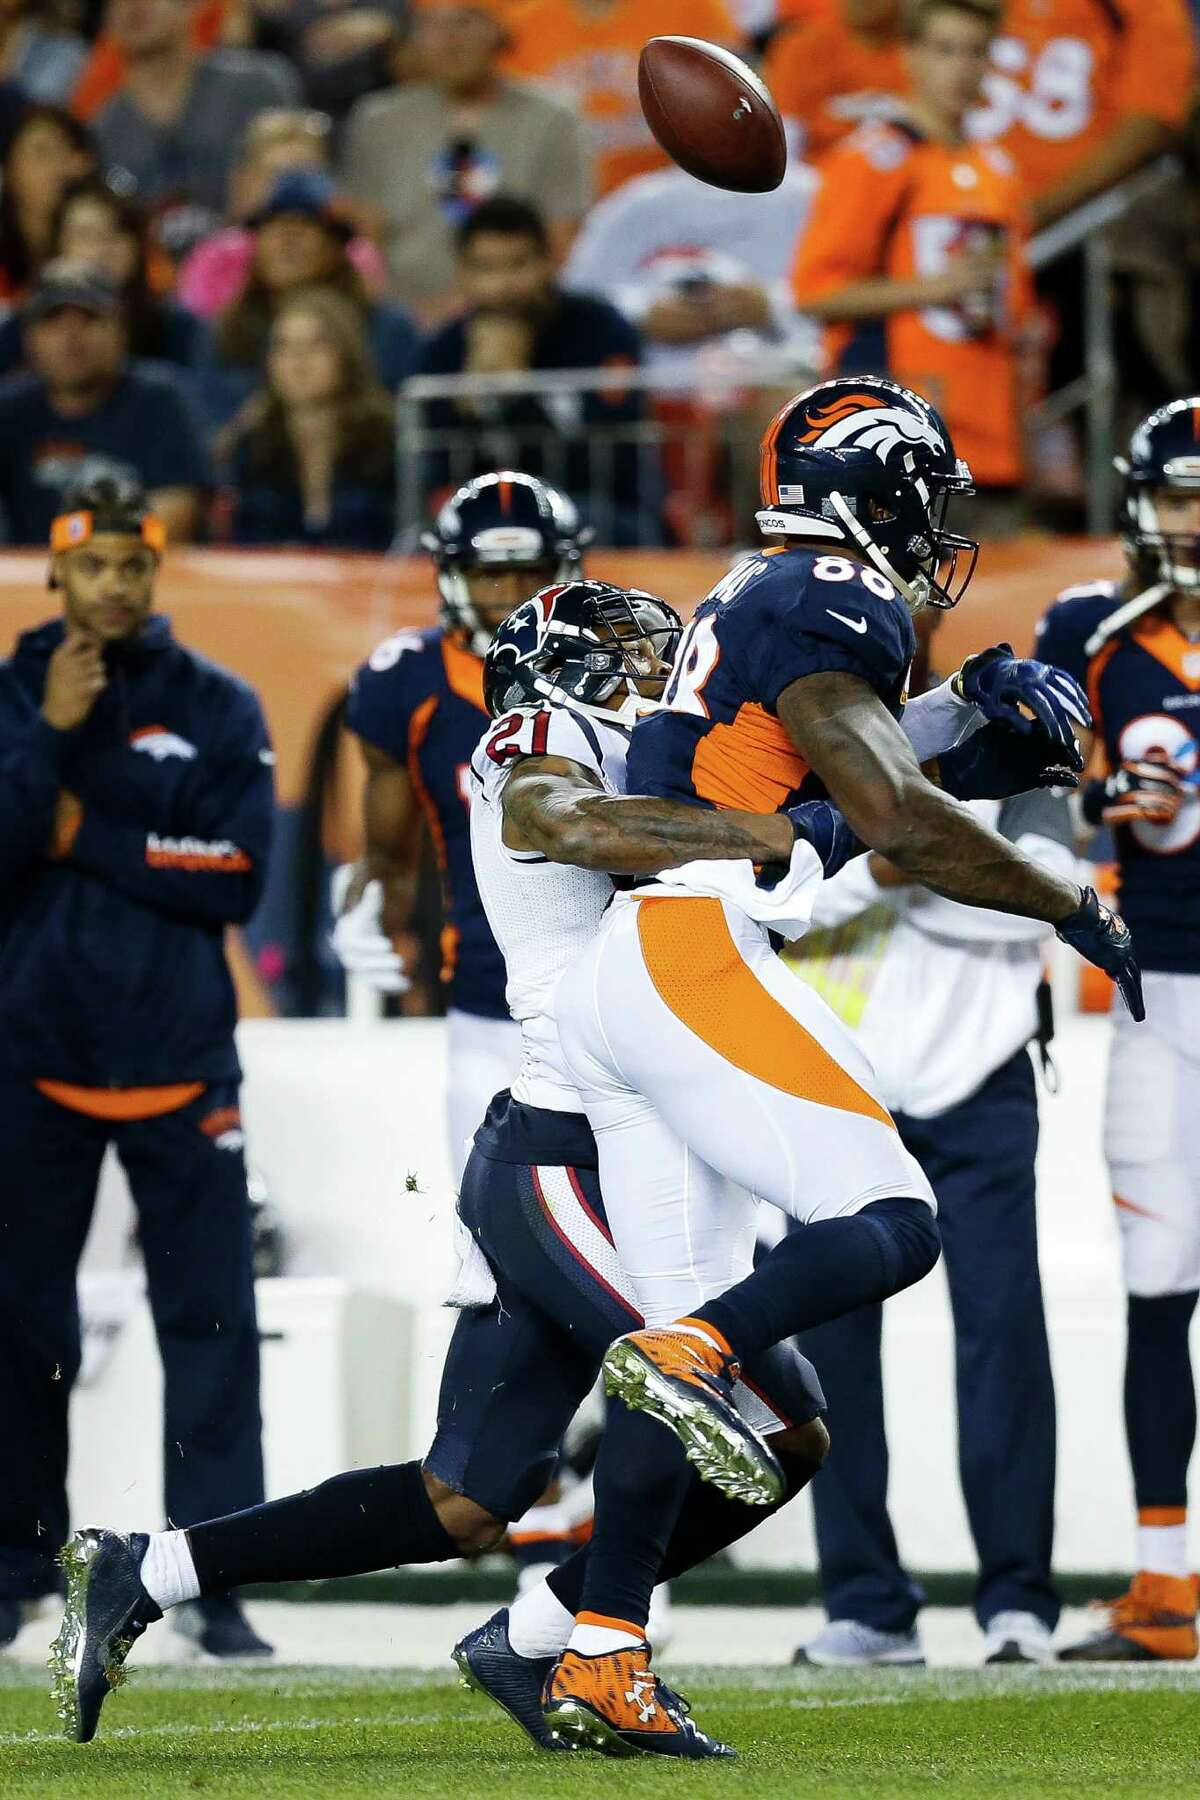 Five up 1. Cornerback A.J. Bouye A pending unrestricted free agent, Bouye shined for the Texans. He had a career-high 11 tackles and two pass deflections. The Broncos tried to test him out, but he was up to the task.